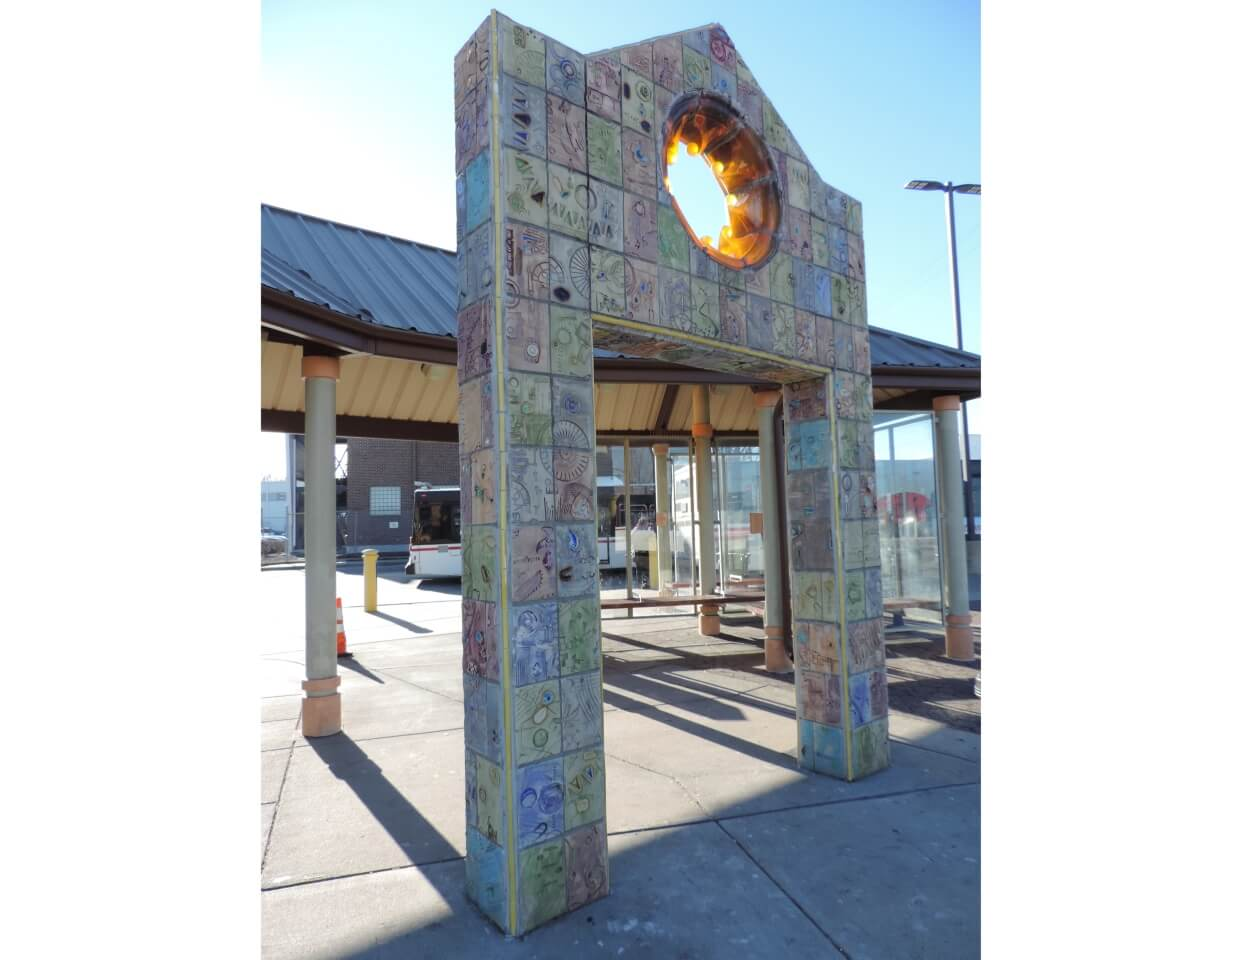 Metroglyph Portal is a public art sculpture created by Con Christeson and Phil Robinson. The concrete gateway is veneered in tiles impressed with textures and patterns from spare bus parts. A glowing resin mandala is the central focus of the piece.